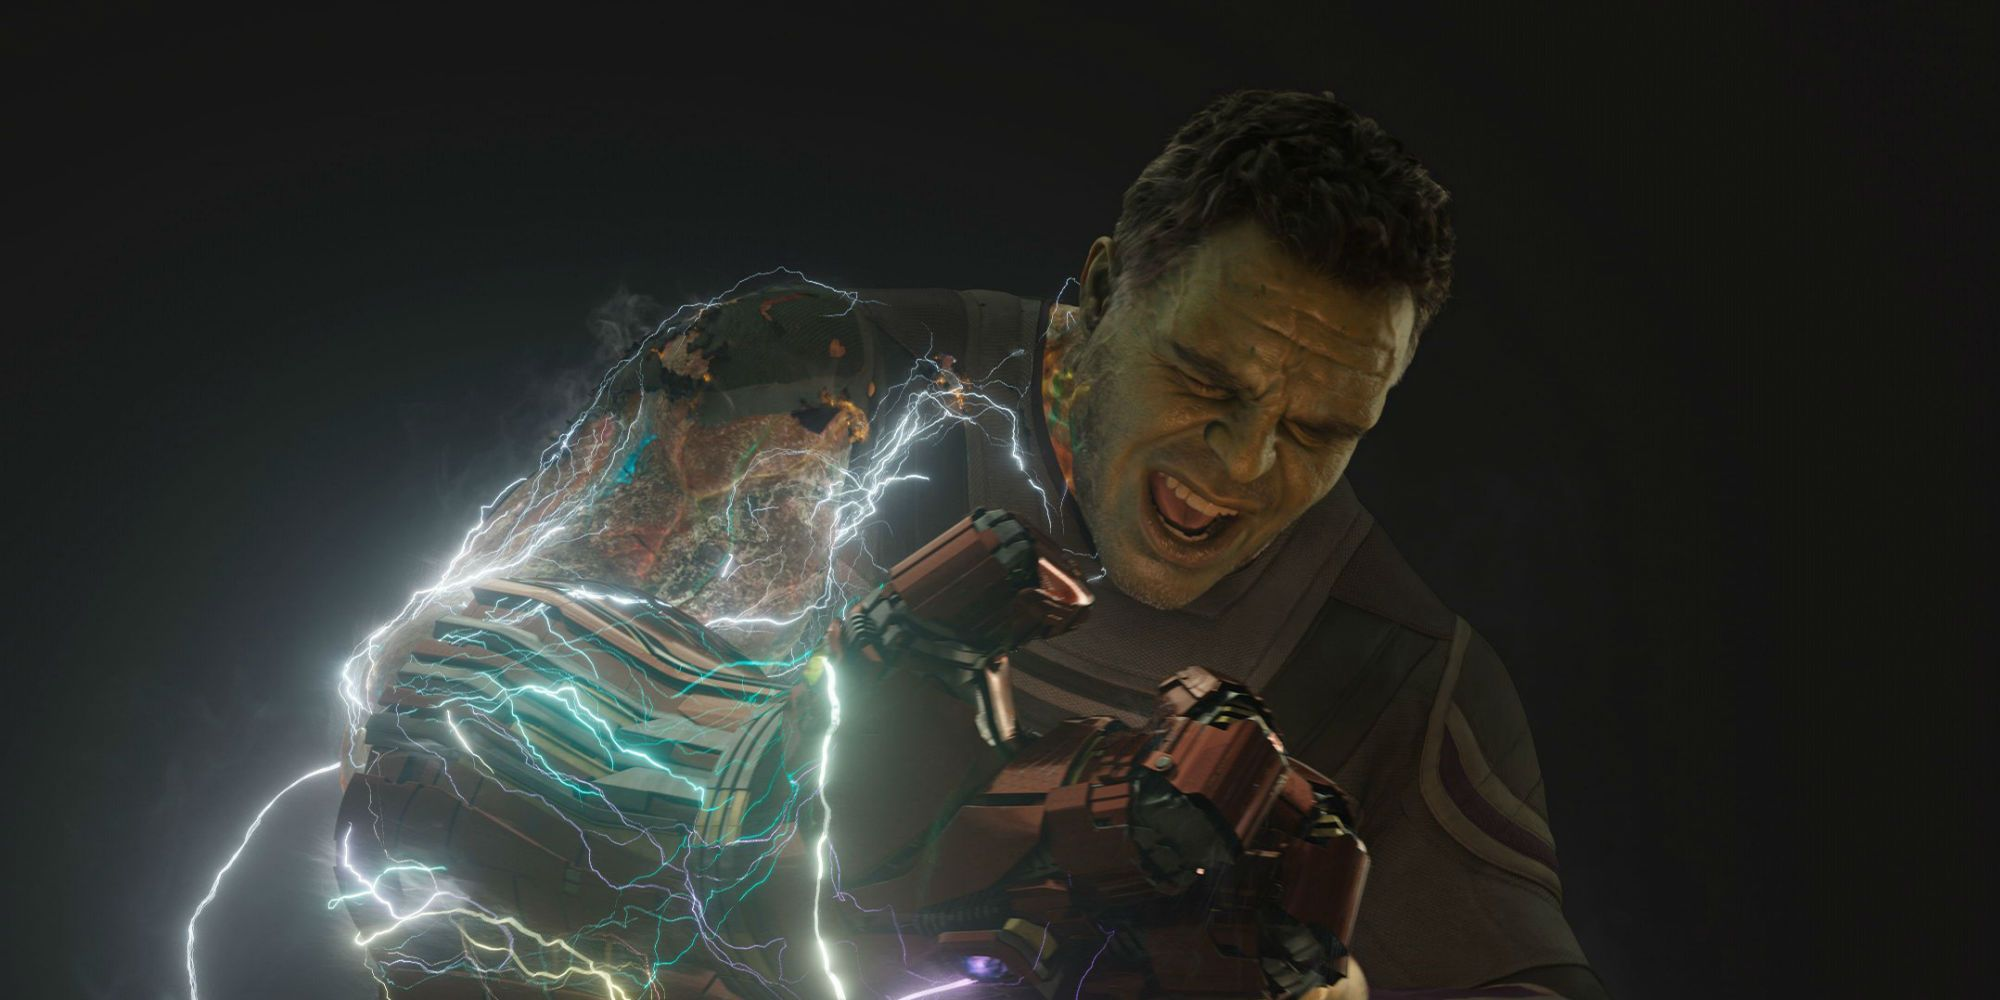 Hulk Was Always Going to Be The Avenger Who Undid The Thanos Snap